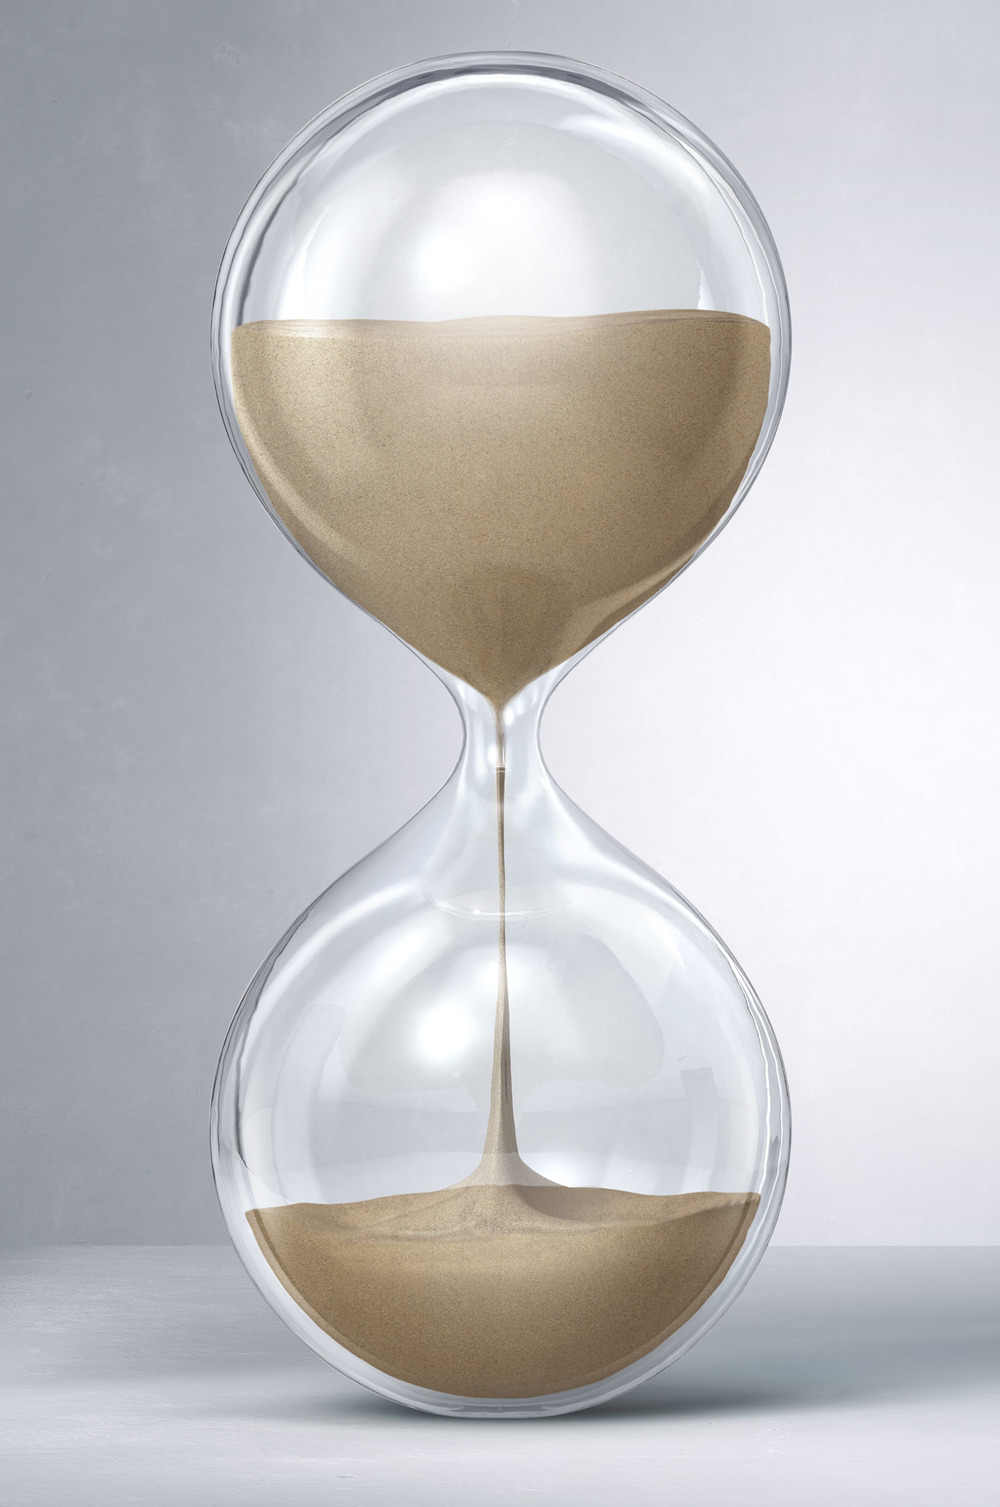 I texture, light and render the hourglass.